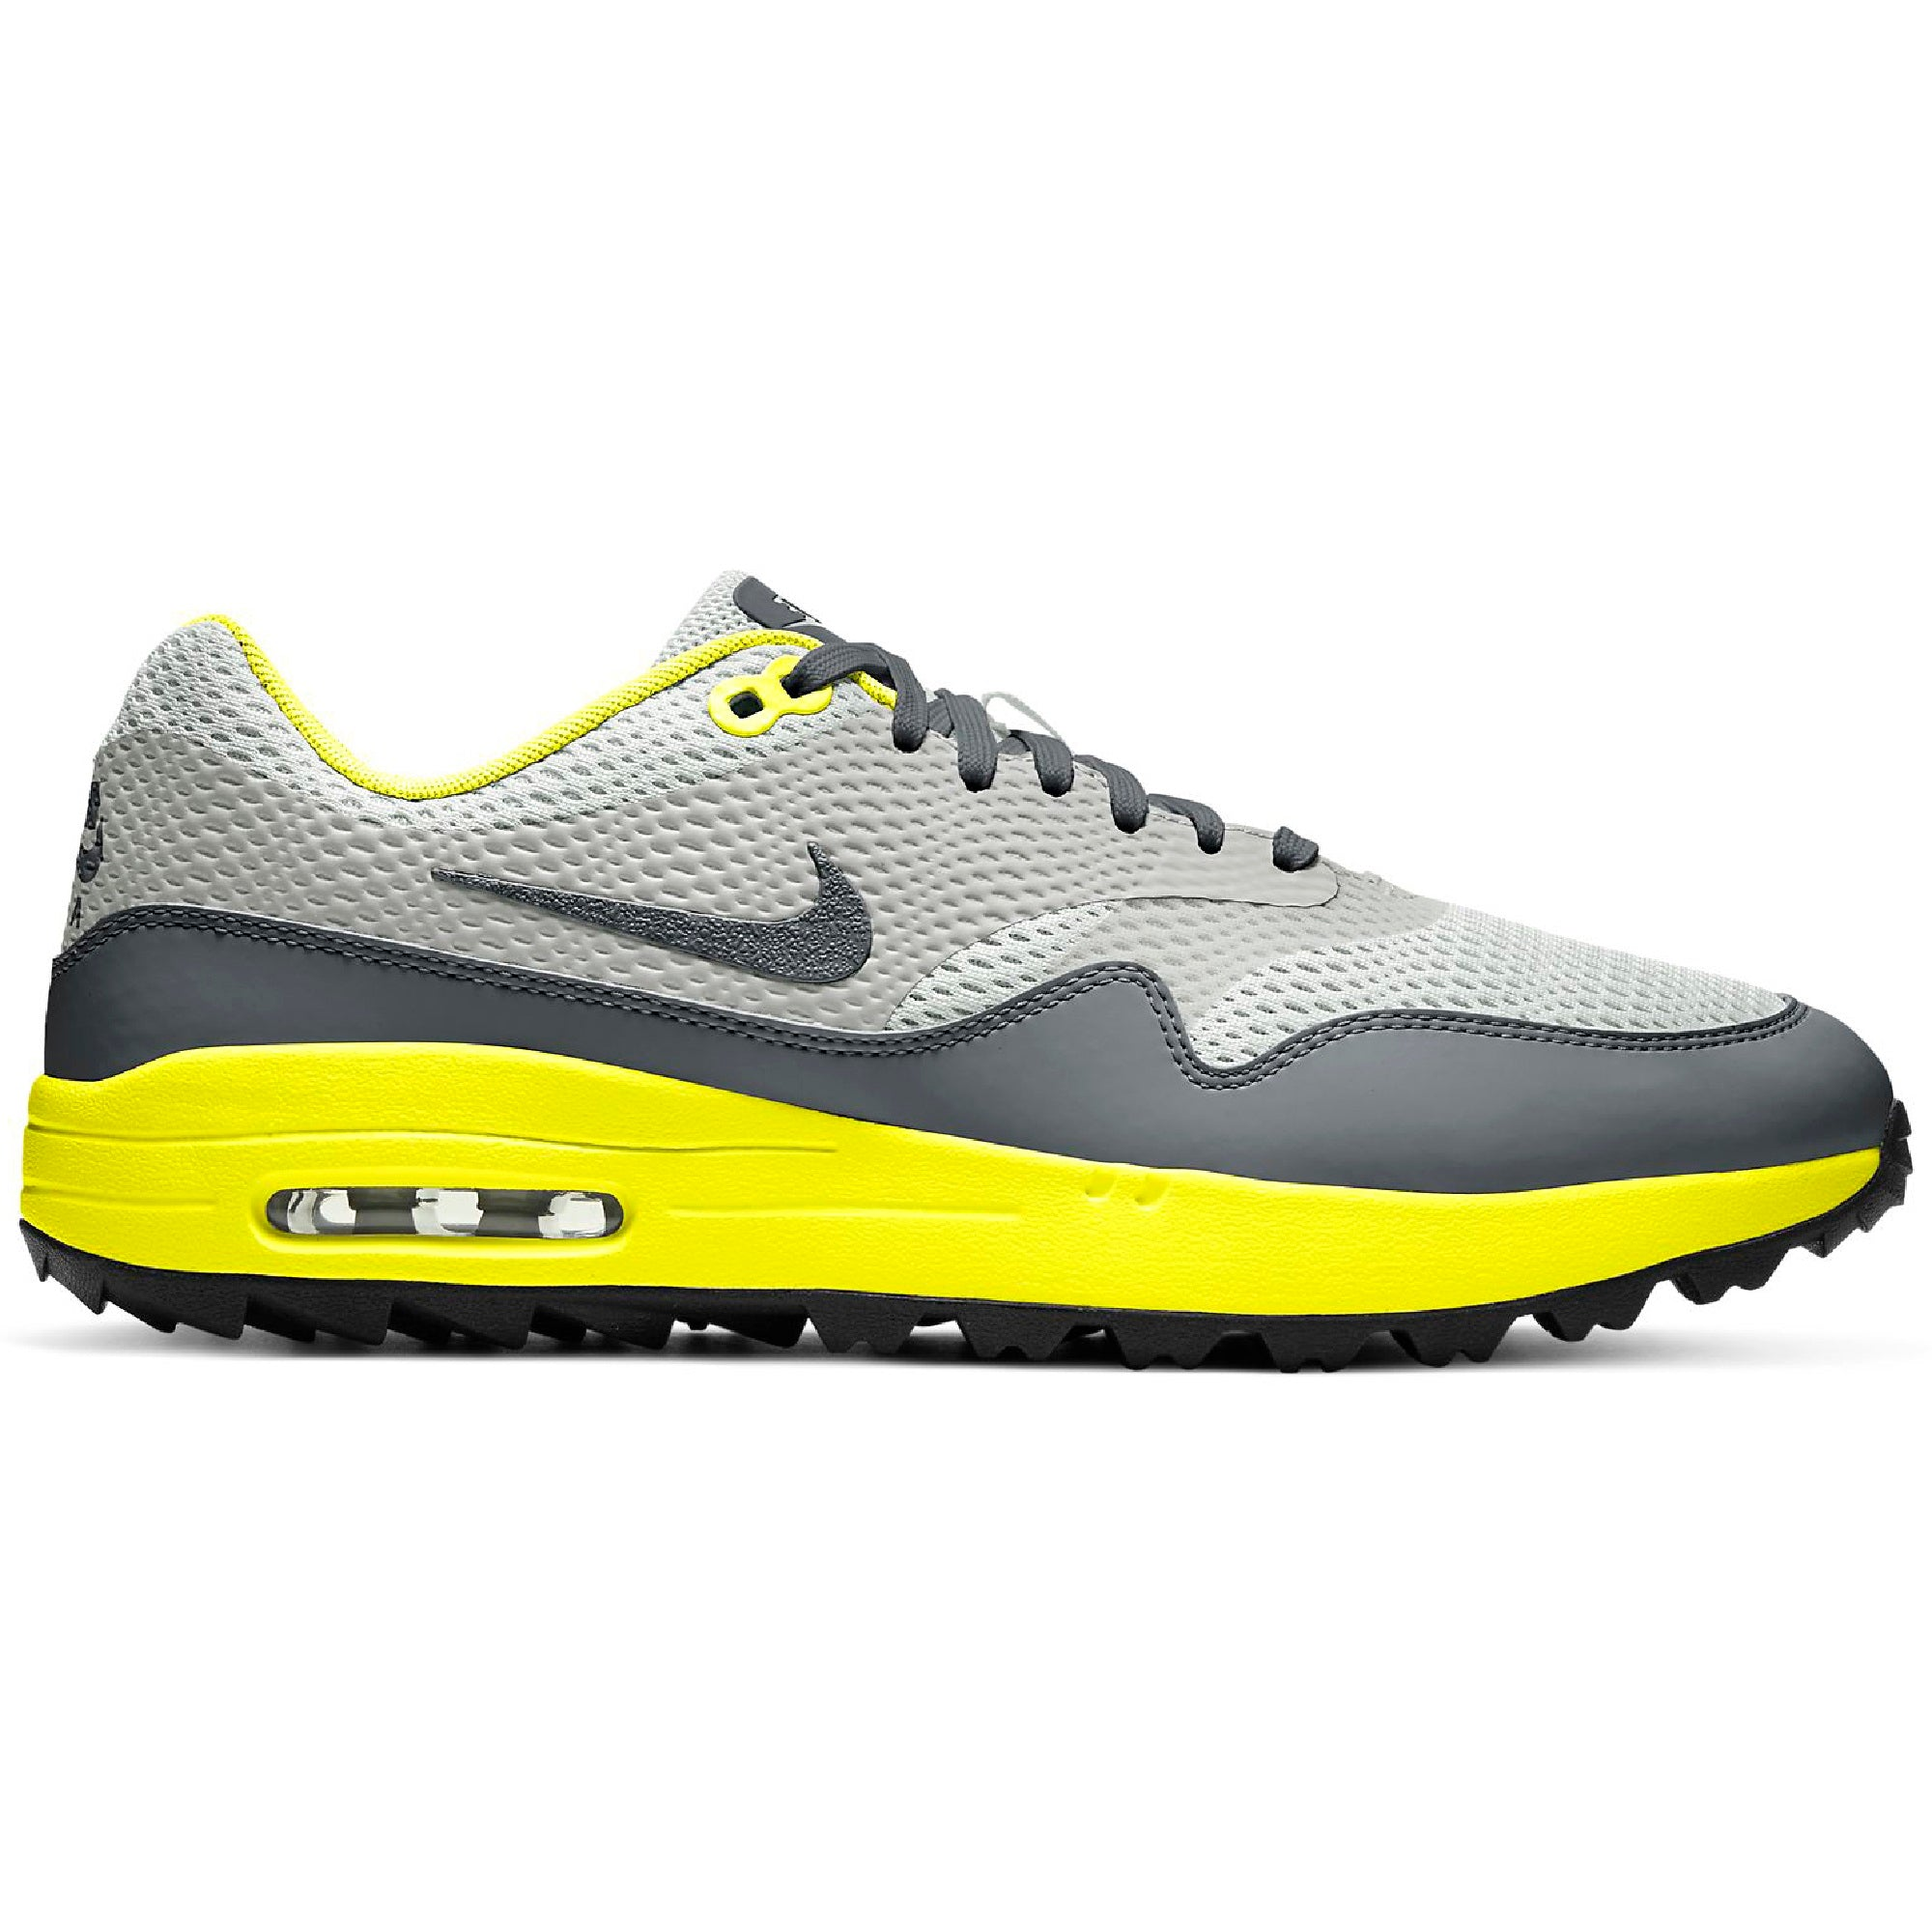 Incompatible espada obispo  Nike Golf Air Max 1 G Mesh Shoes CI7576 Grey Fog Photon Dust Lemon 003 |  Function18